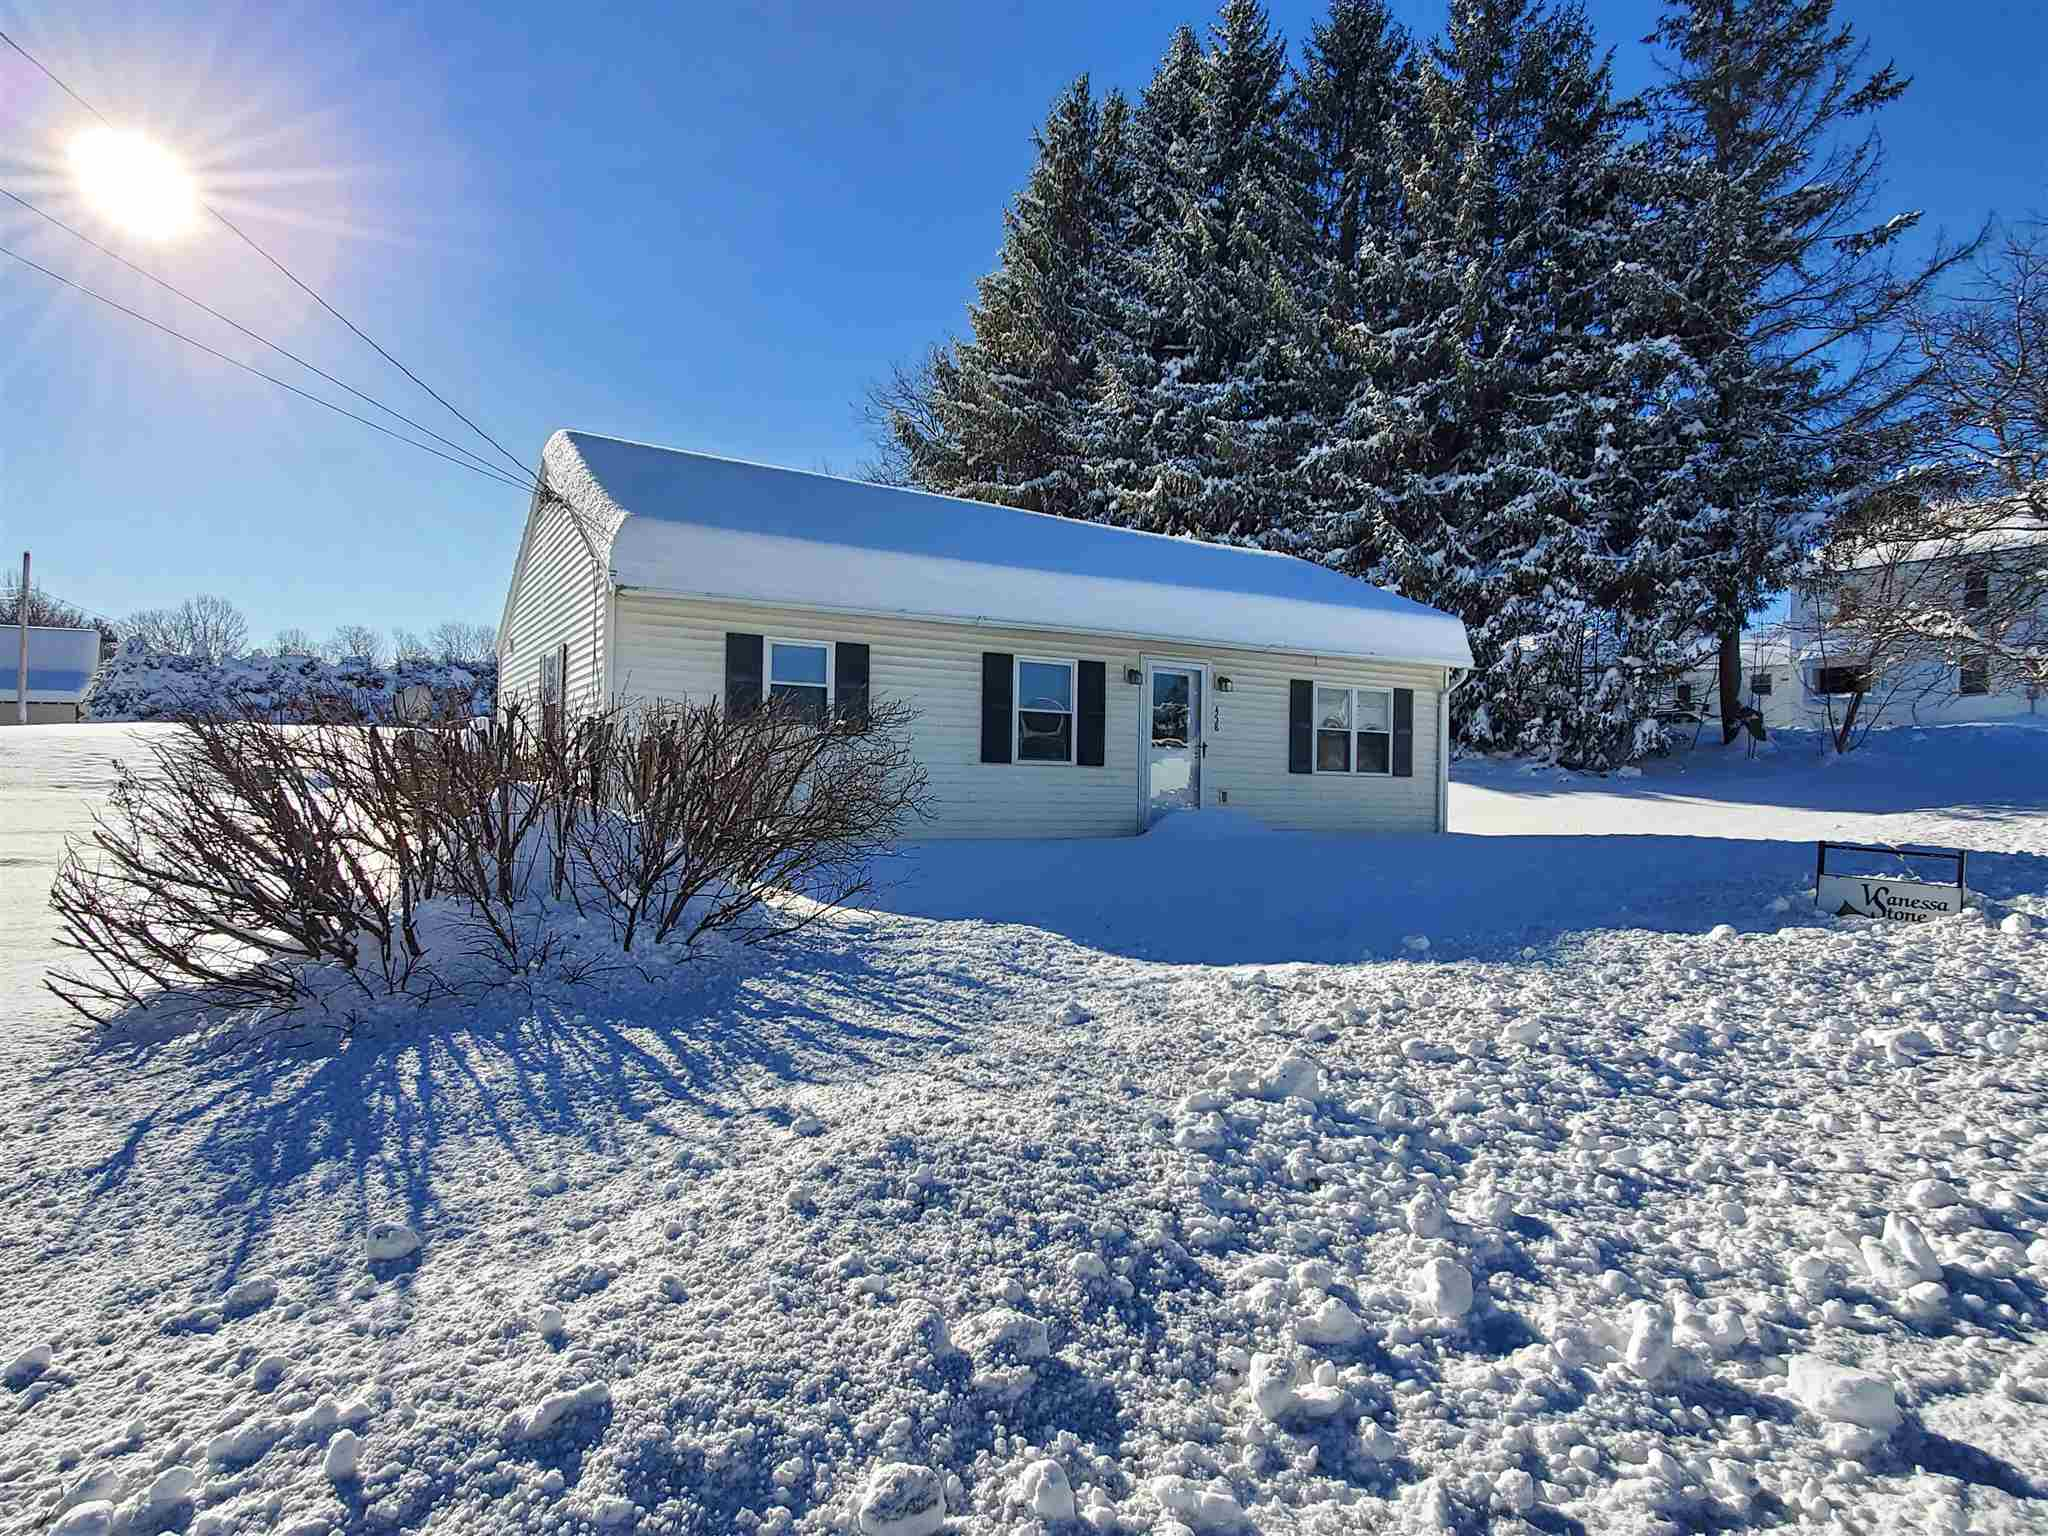 MLS 4833909: 458 US 4 Route, Enfield NH